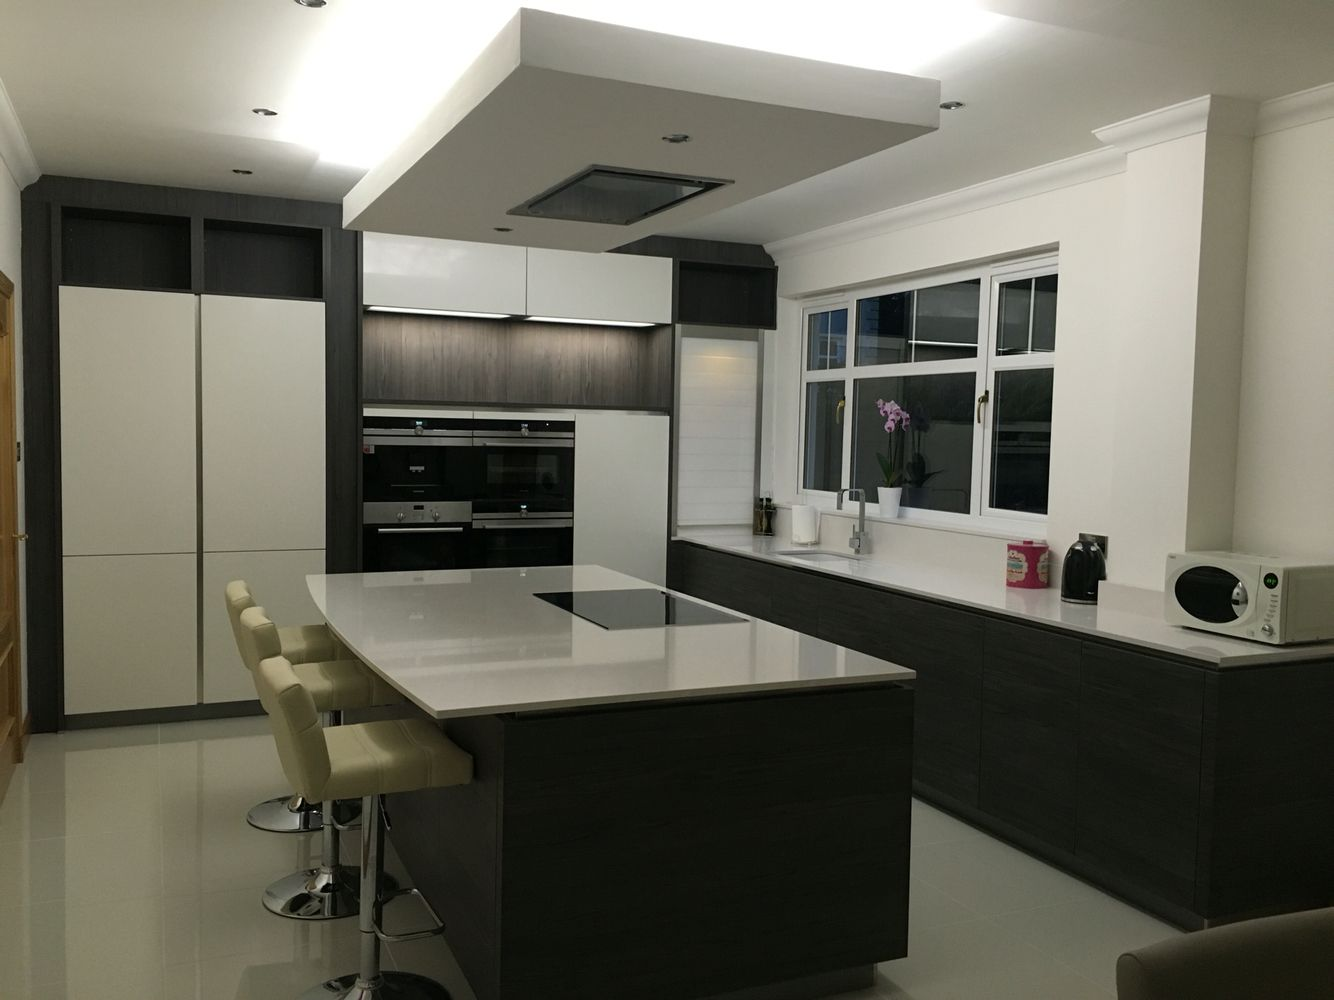 Dark Pine And High Gloss White Handleless Kitchen By Dave Penman From The  Hacker Systemat Range